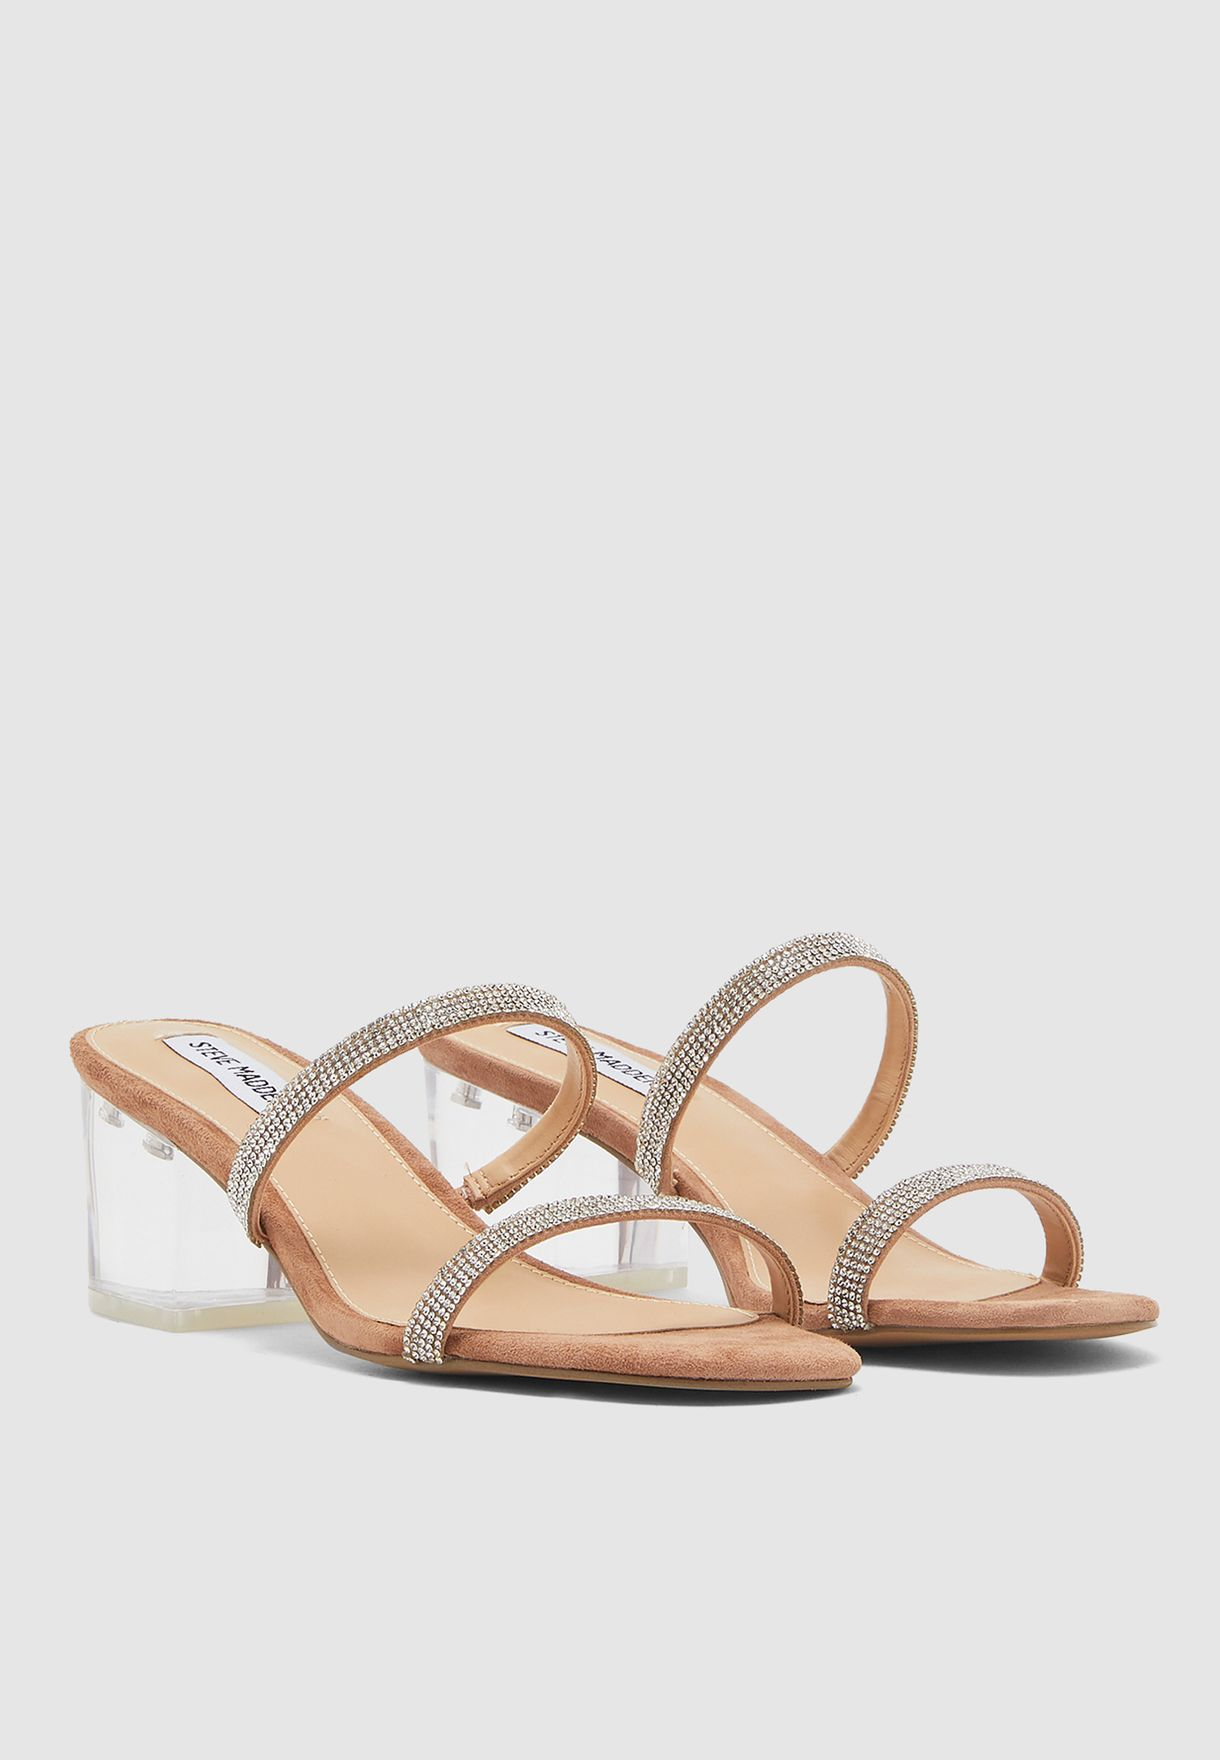 Issy-R Double Strap High Heel Sandal - Brown